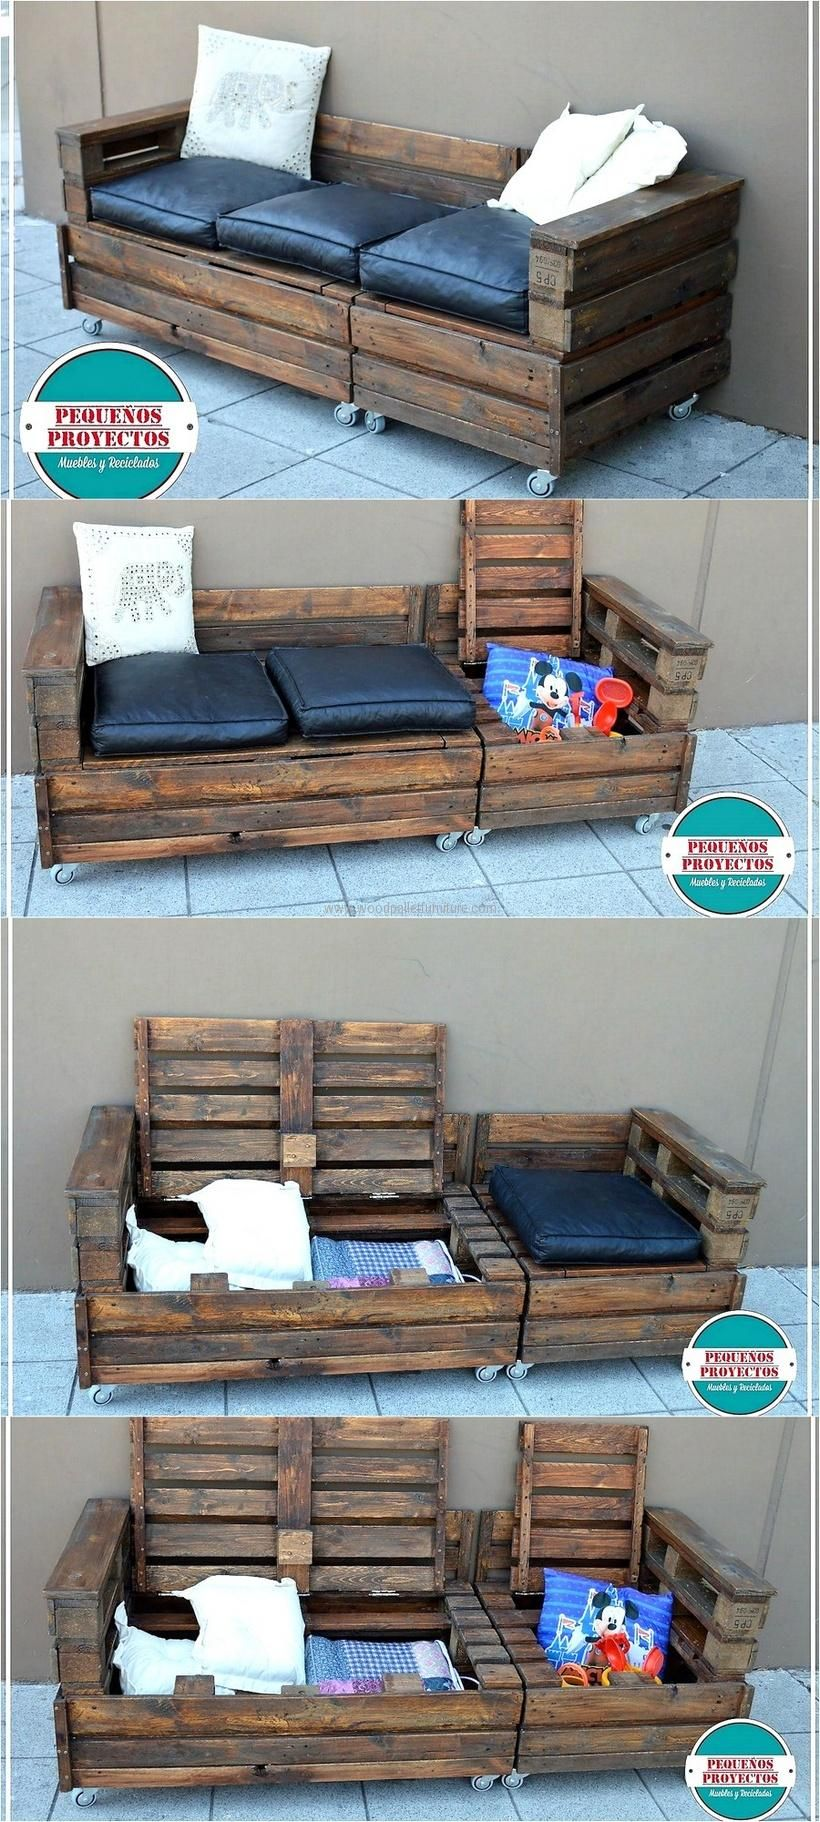 The Reshaping Wood Pallet Ideas With The Storage Option Are The Best Because They Help Pallet Furniture Outdoor Pallet Projects Furniture Diy Pallet Furniture